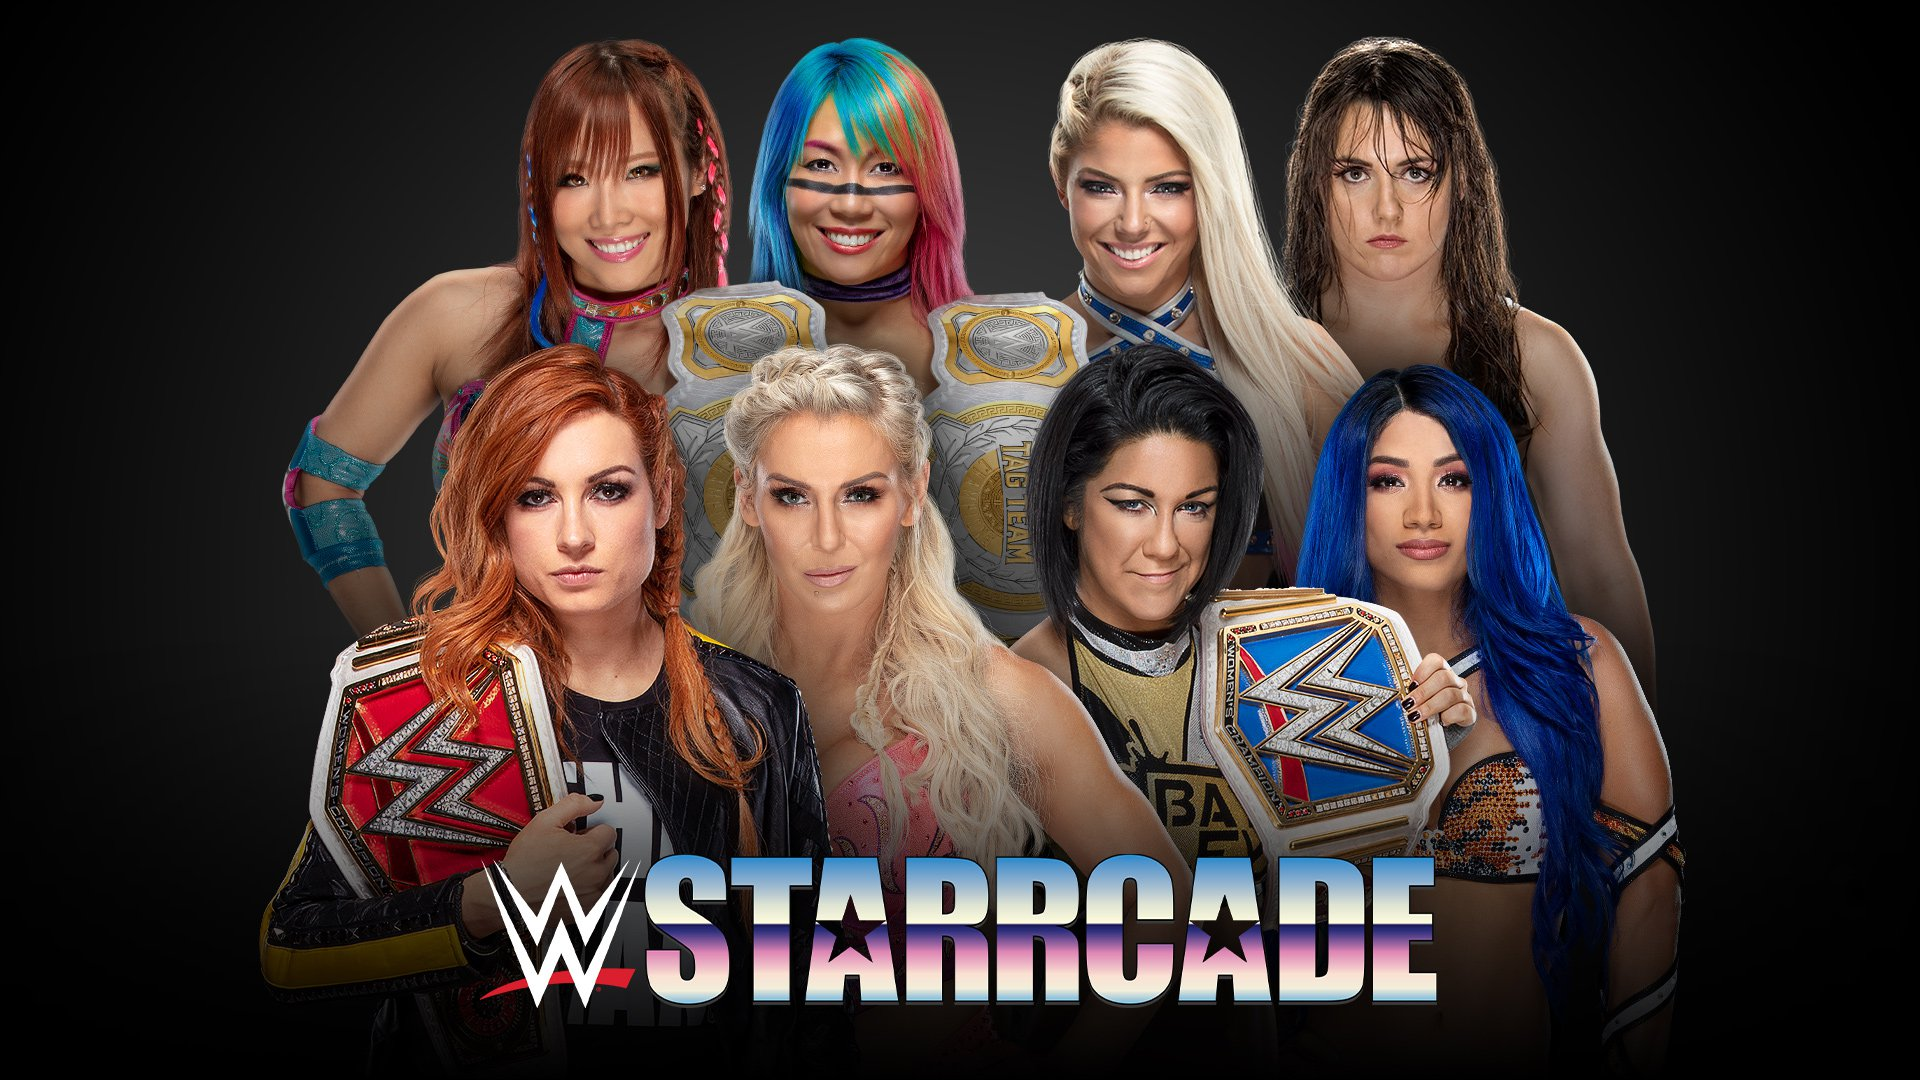 Huge matches announced for Sunday's WWE Starrcade this Sunday